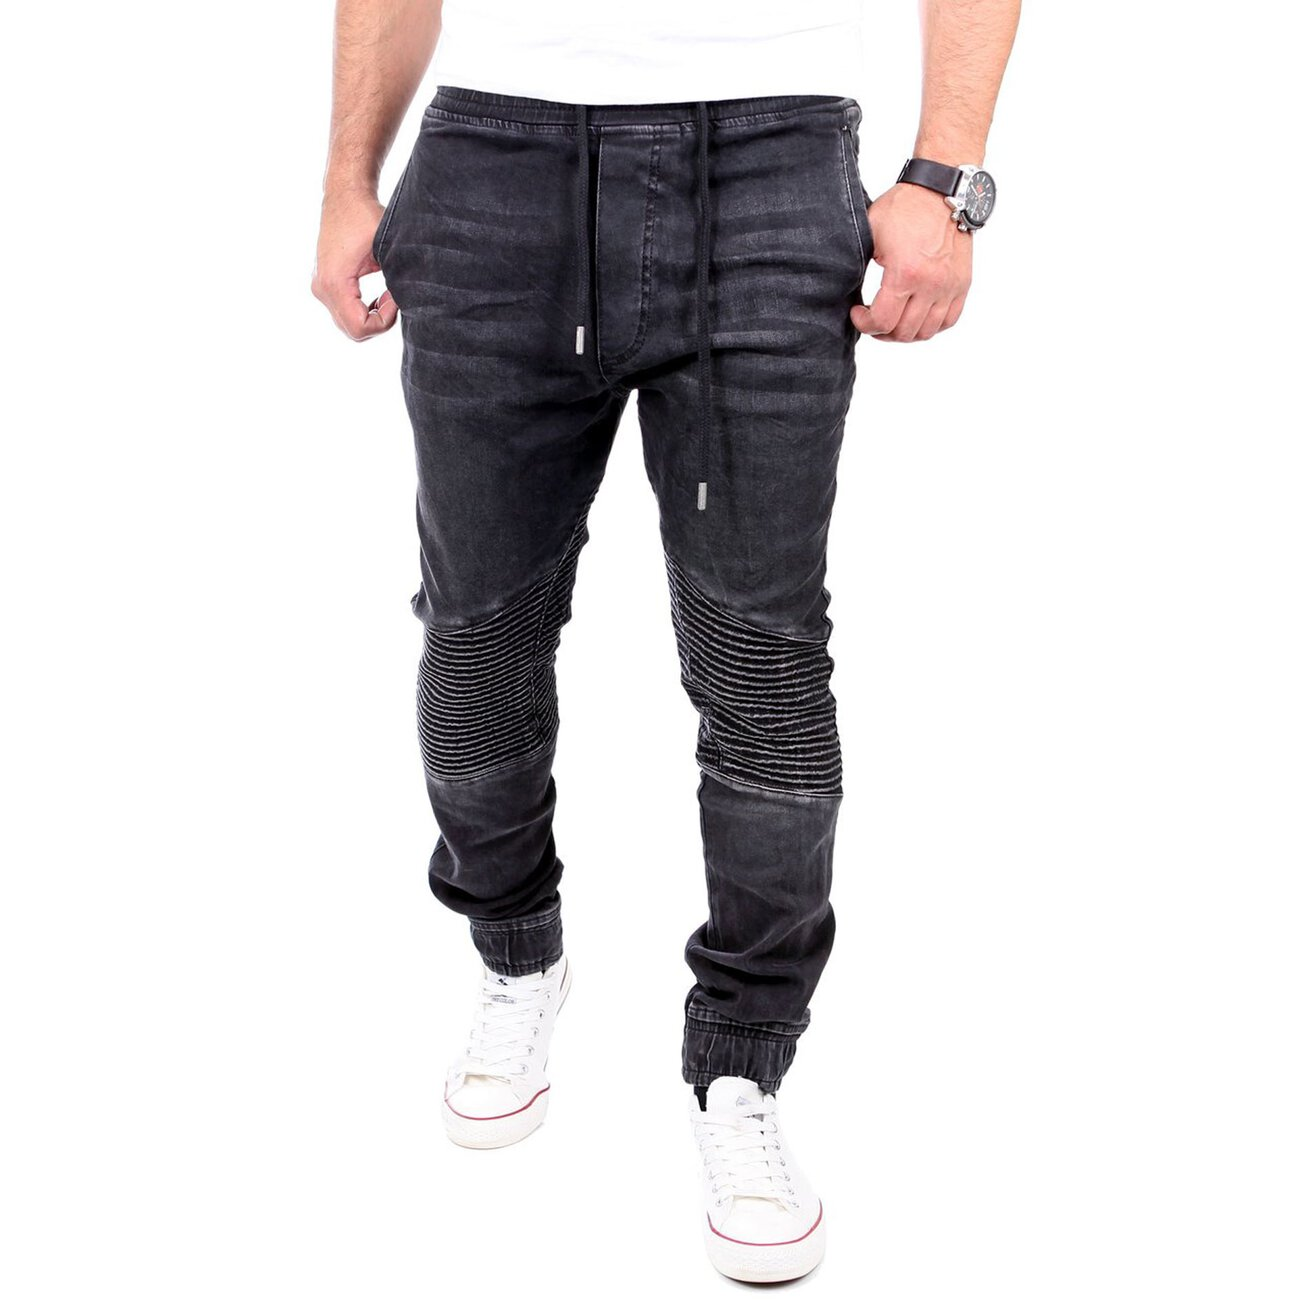 reslad jogg jeans biker style jeans herren slim fit. Black Bedroom Furniture Sets. Home Design Ideas